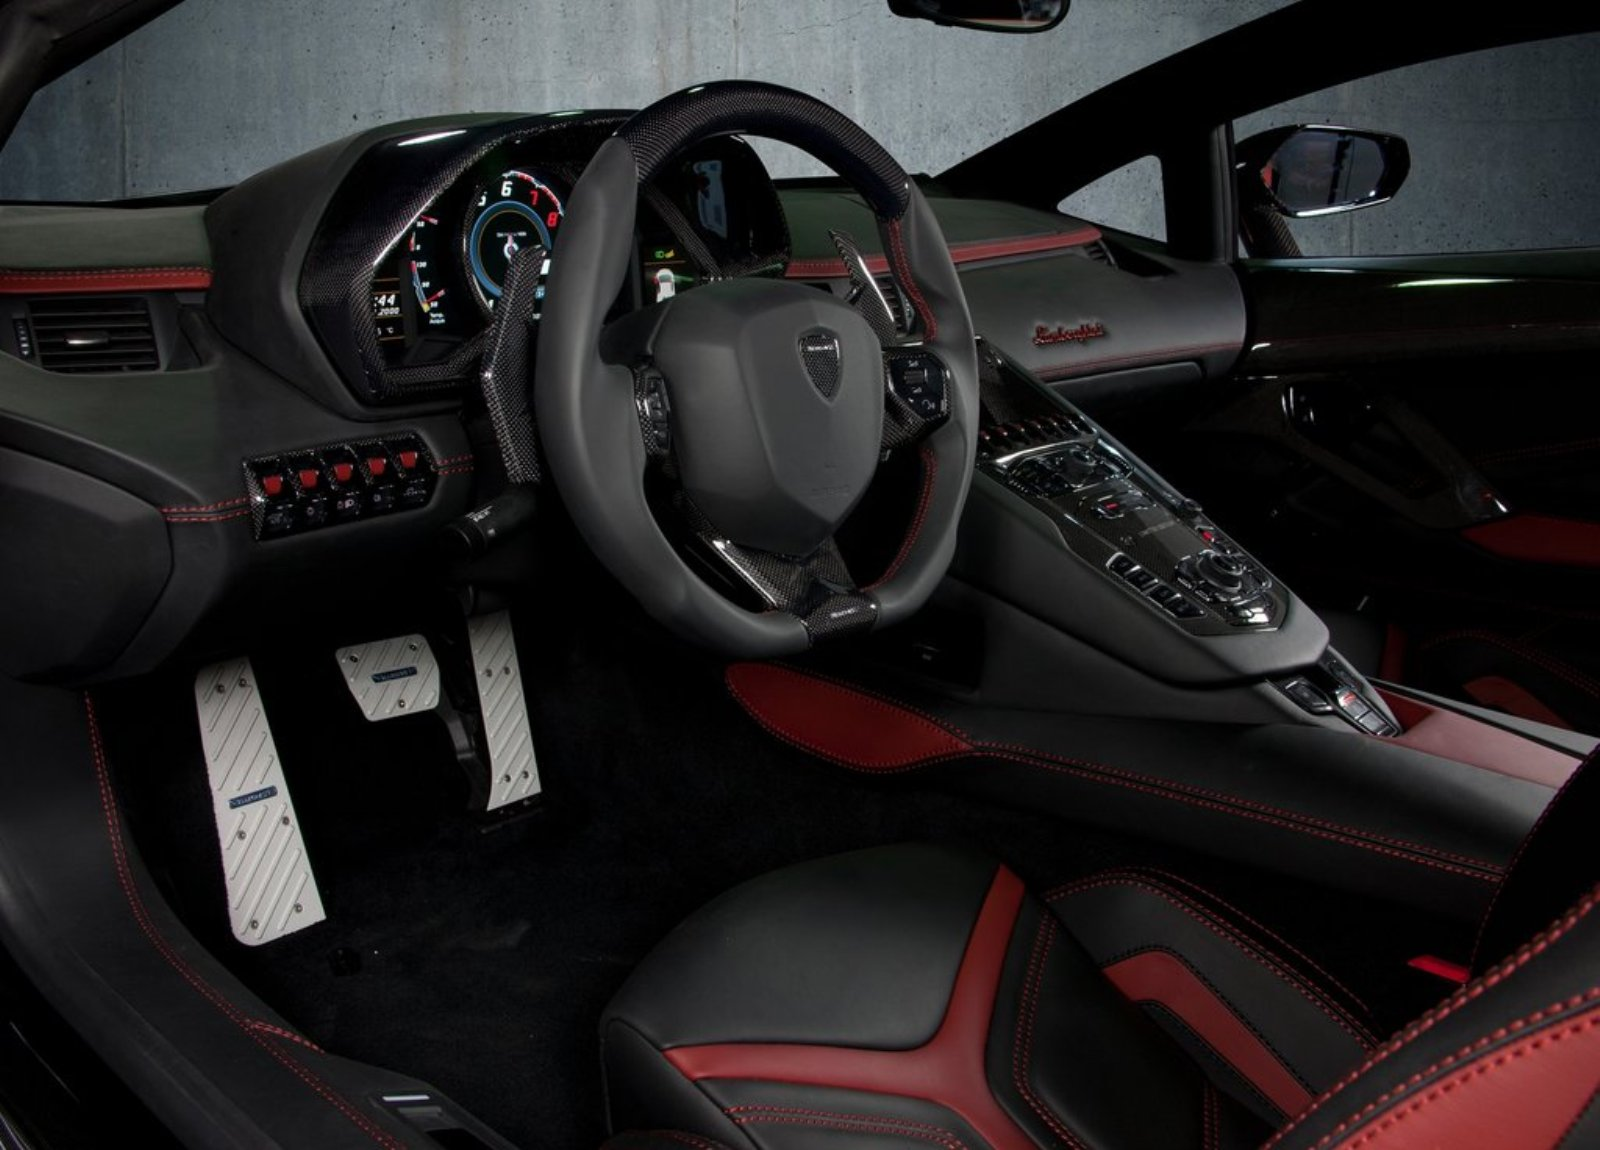 lamborghini aventador interior rzbvvvs engine information. Black Bedroom Furniture Sets. Home Design Ideas